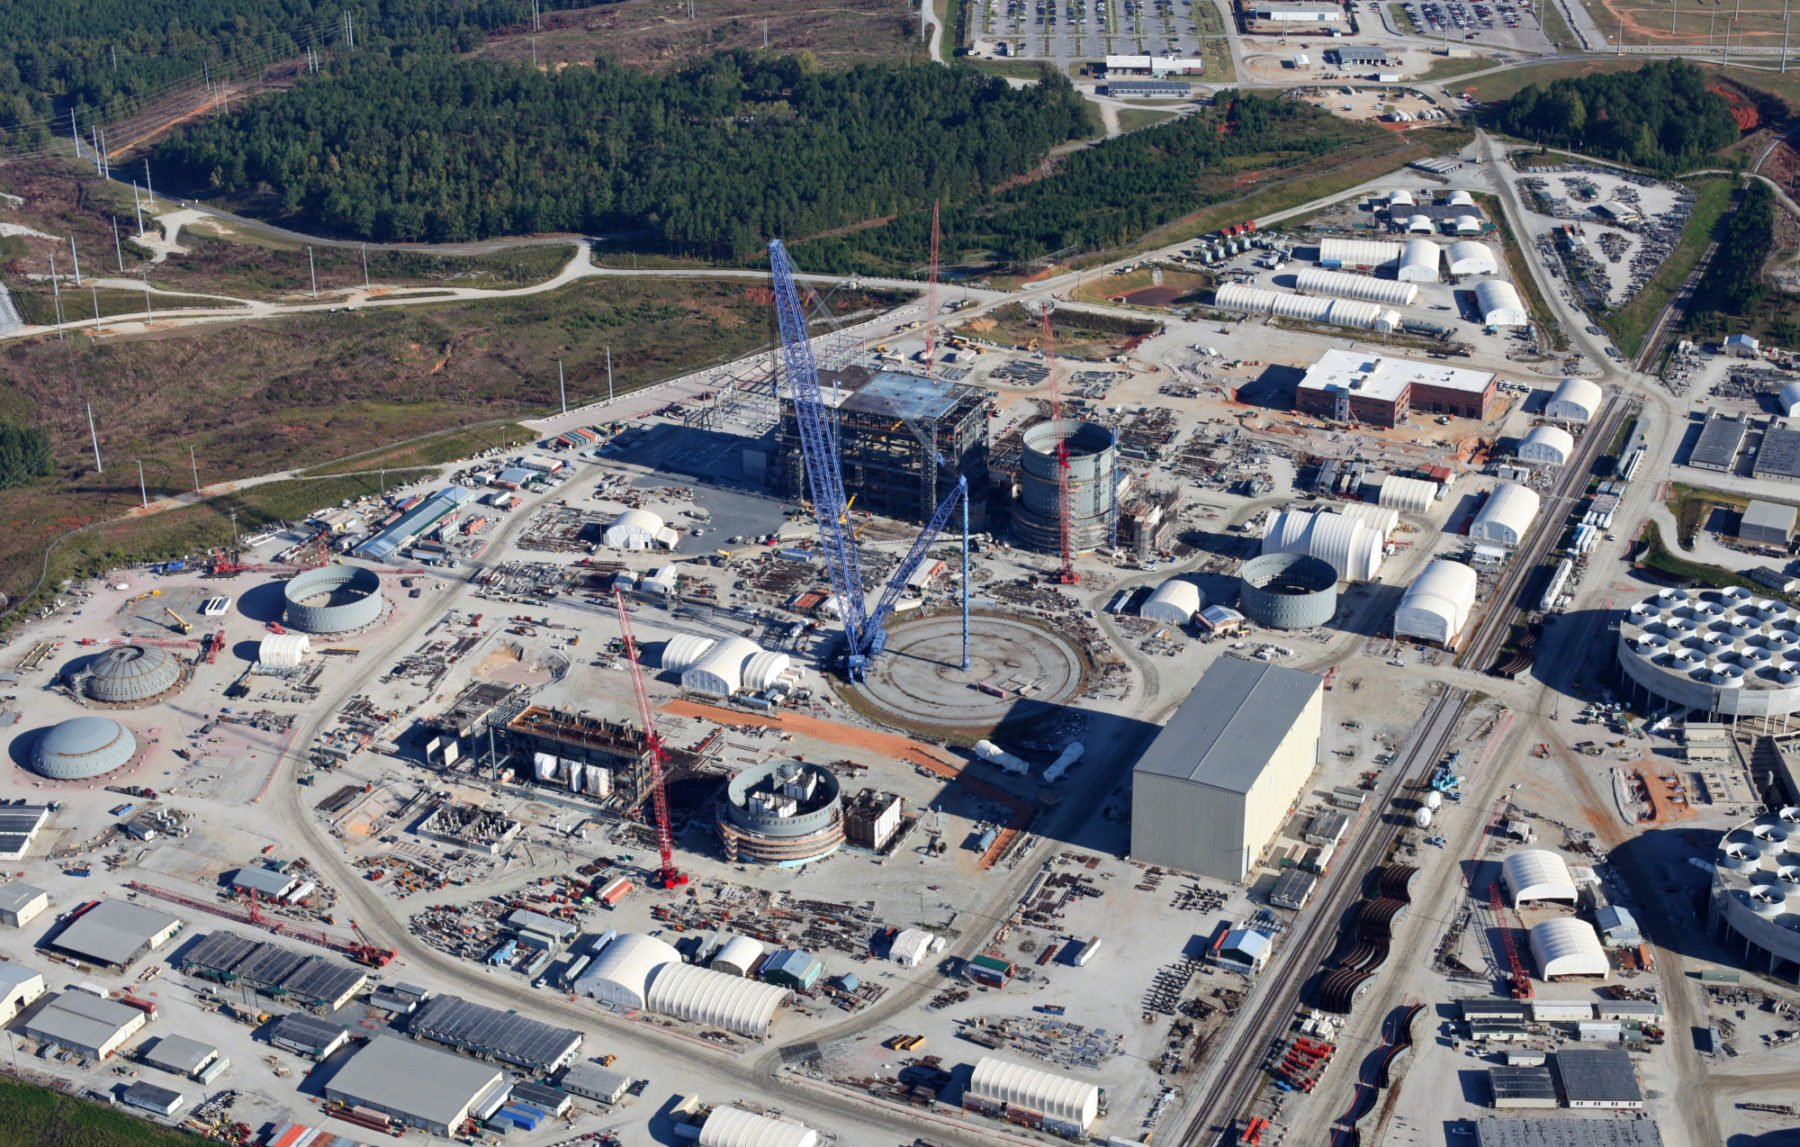 SCE&G leader Marsh to retire after failed $9B nuke project